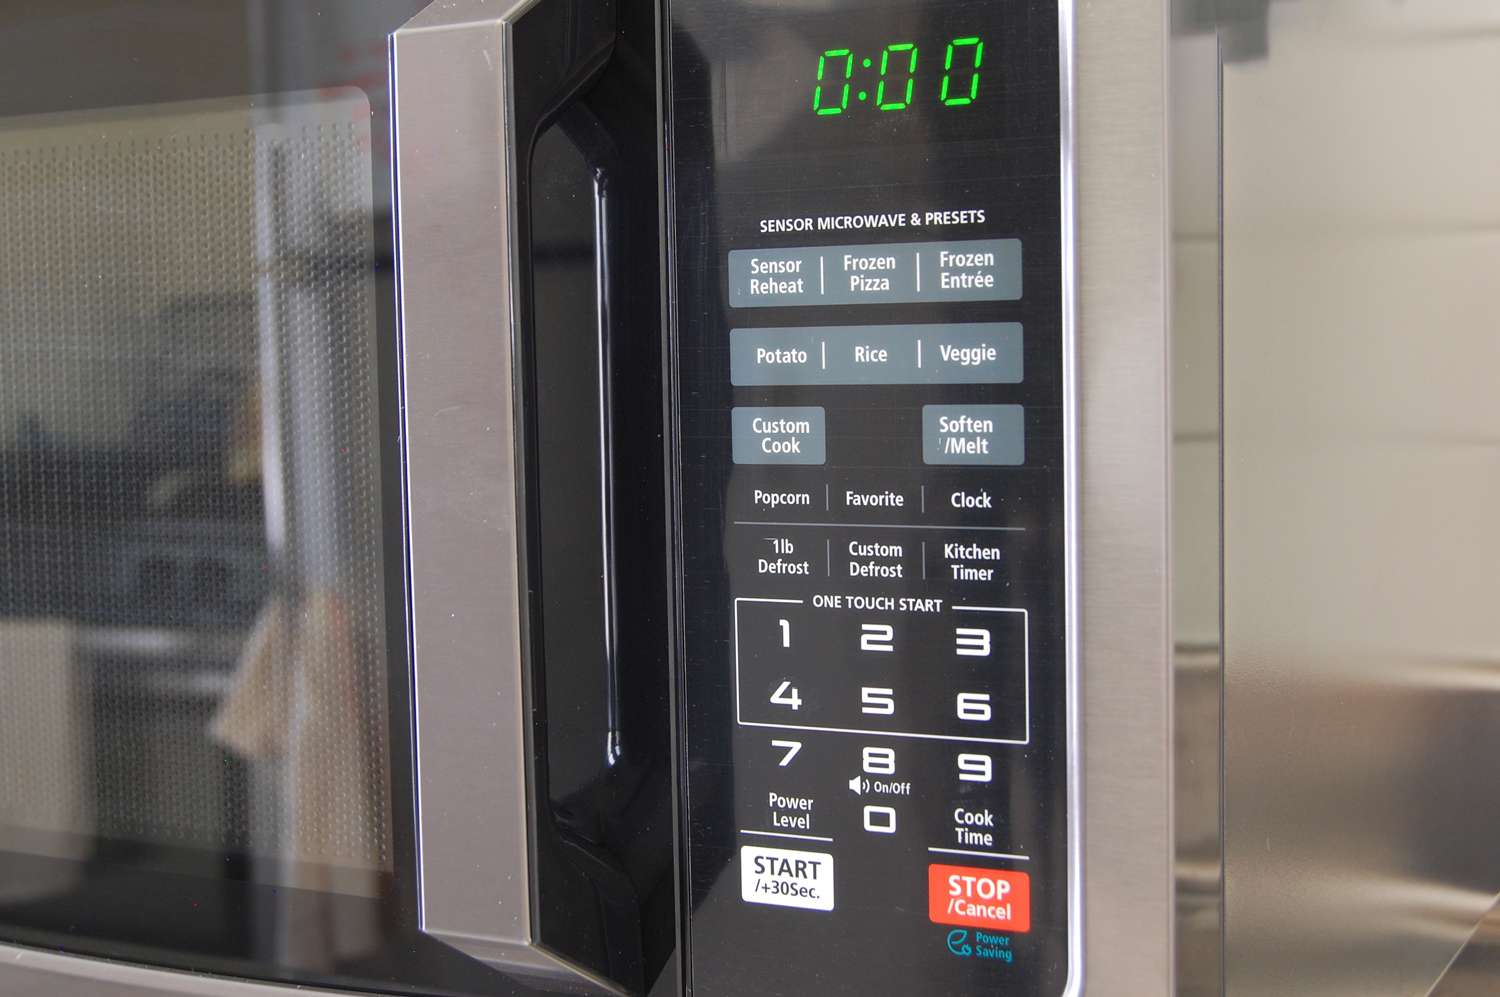 Toshiba Em131a5c Bs Microwave Oven Review A Practical Choice